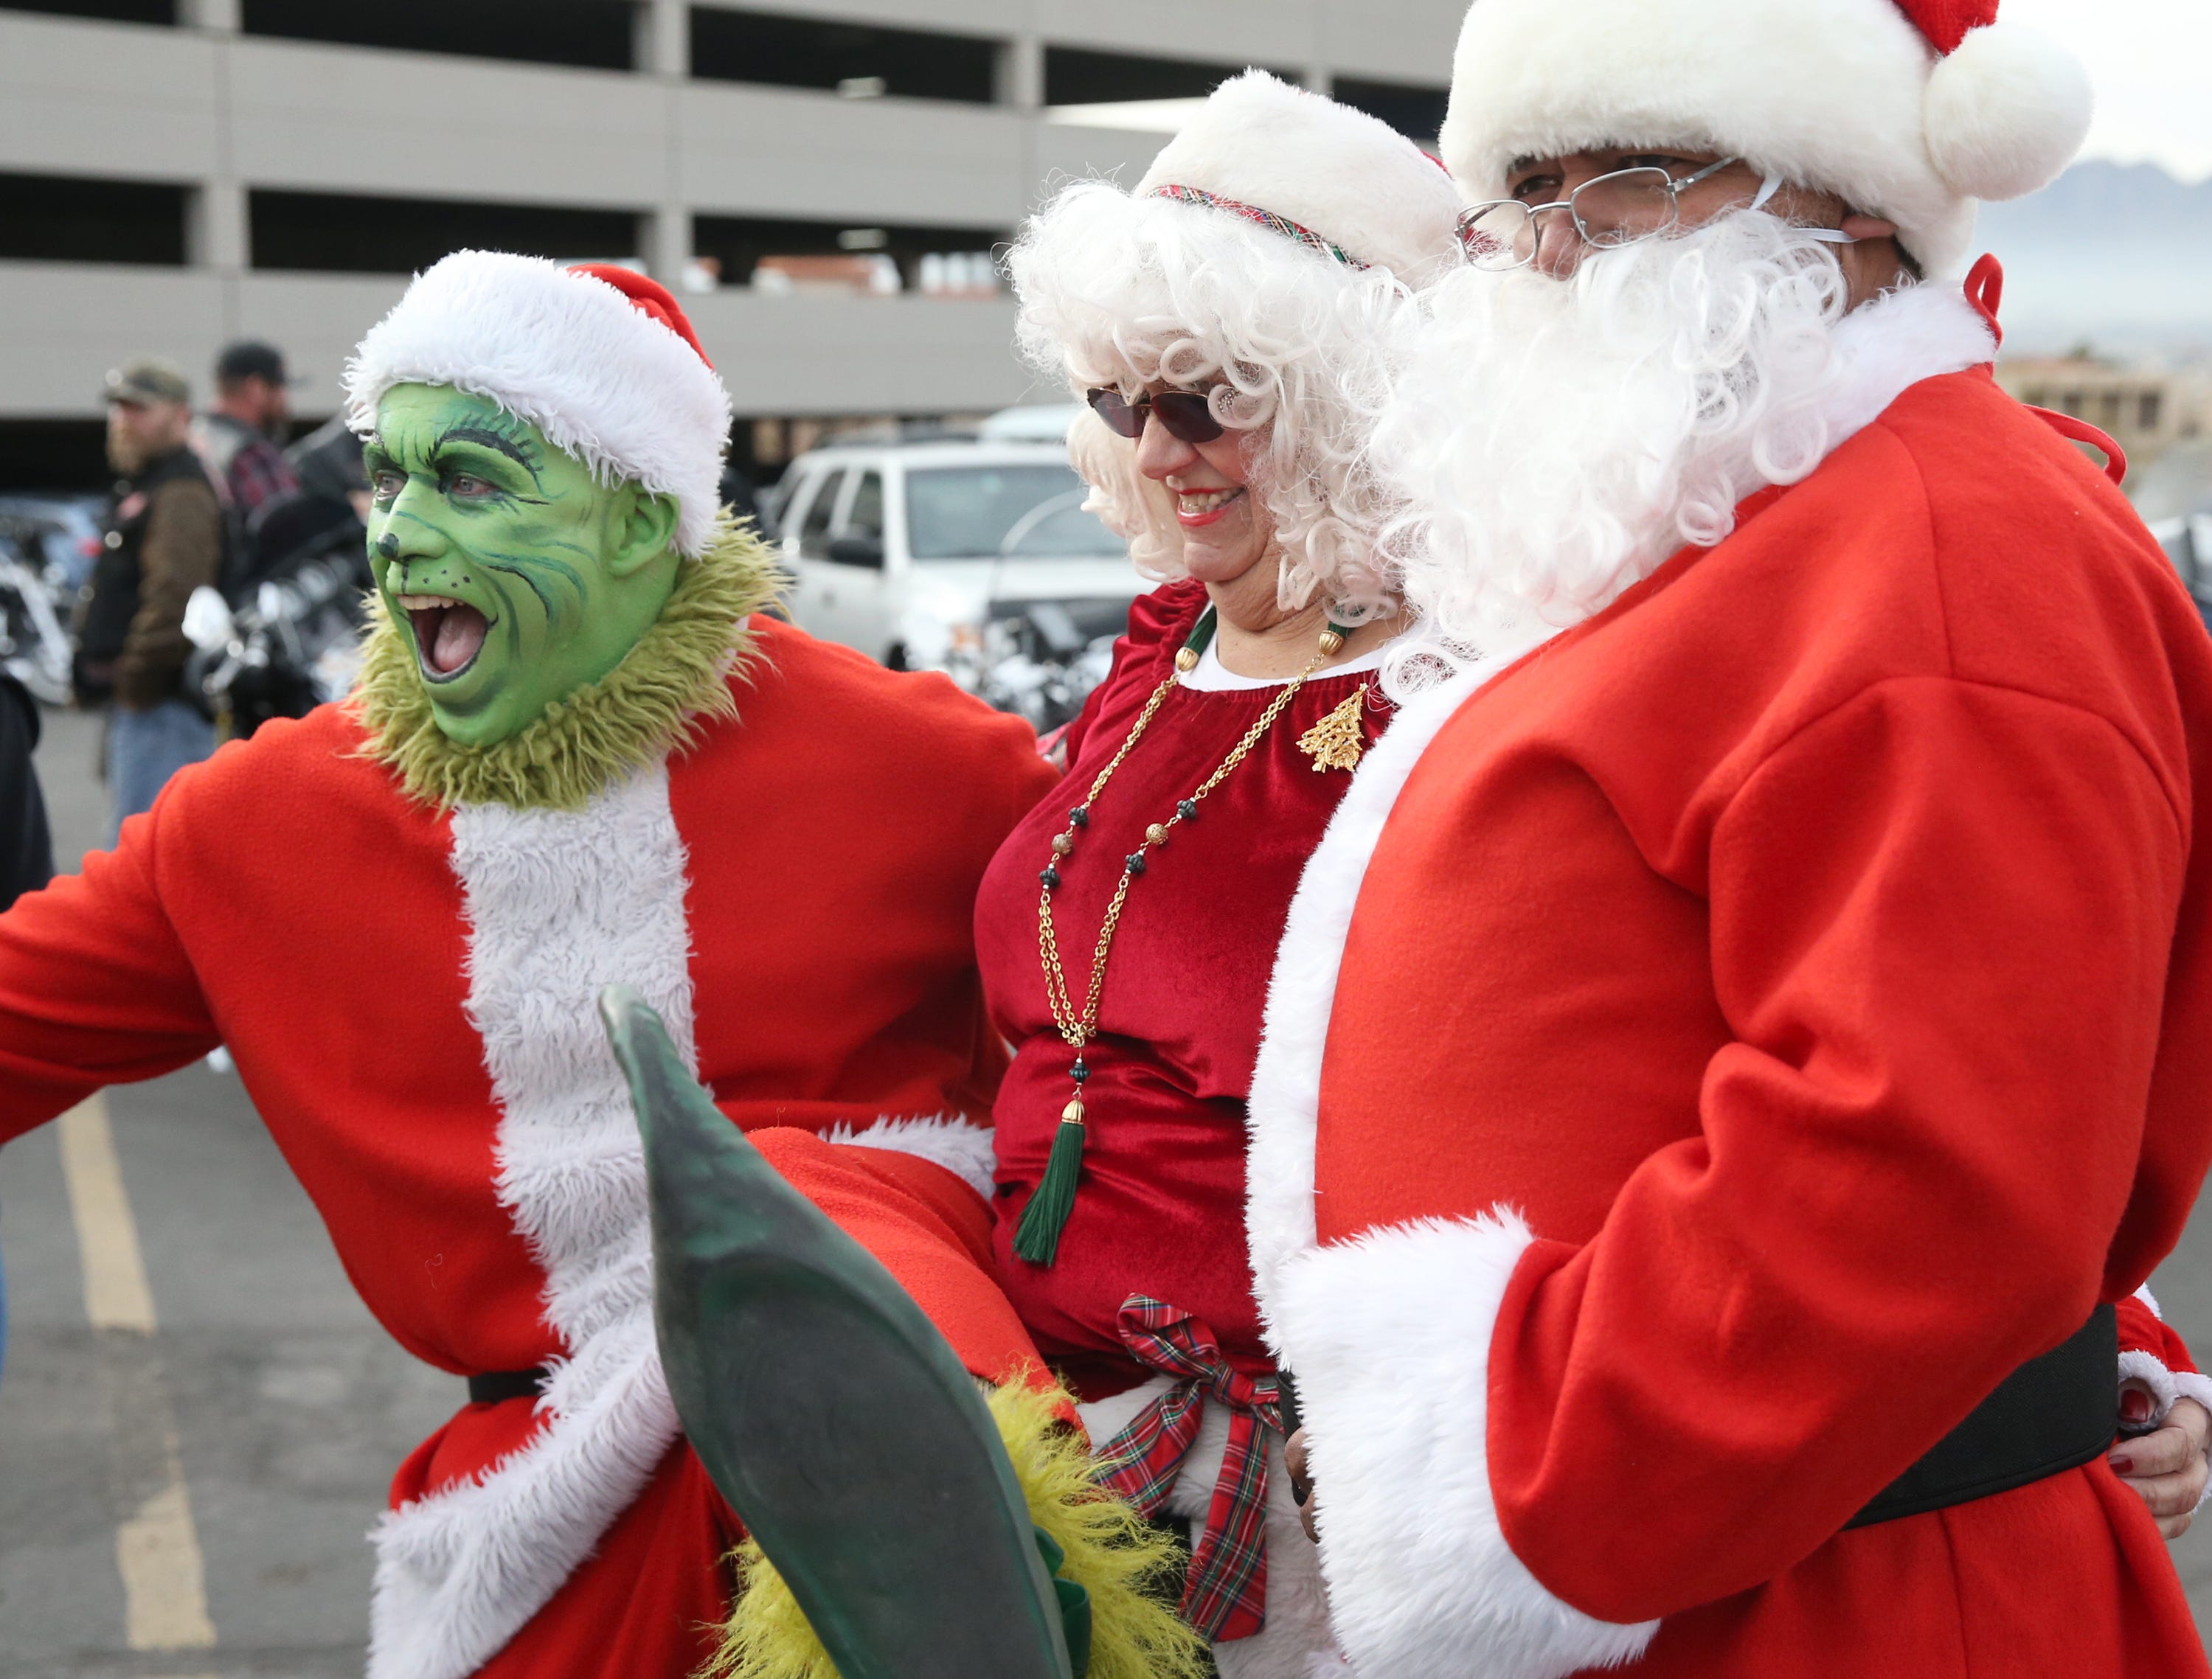 The Grinch was true to himself as he played around with Santa and Mr. Claus outside Providence Children's Hospital on Christmas Day.